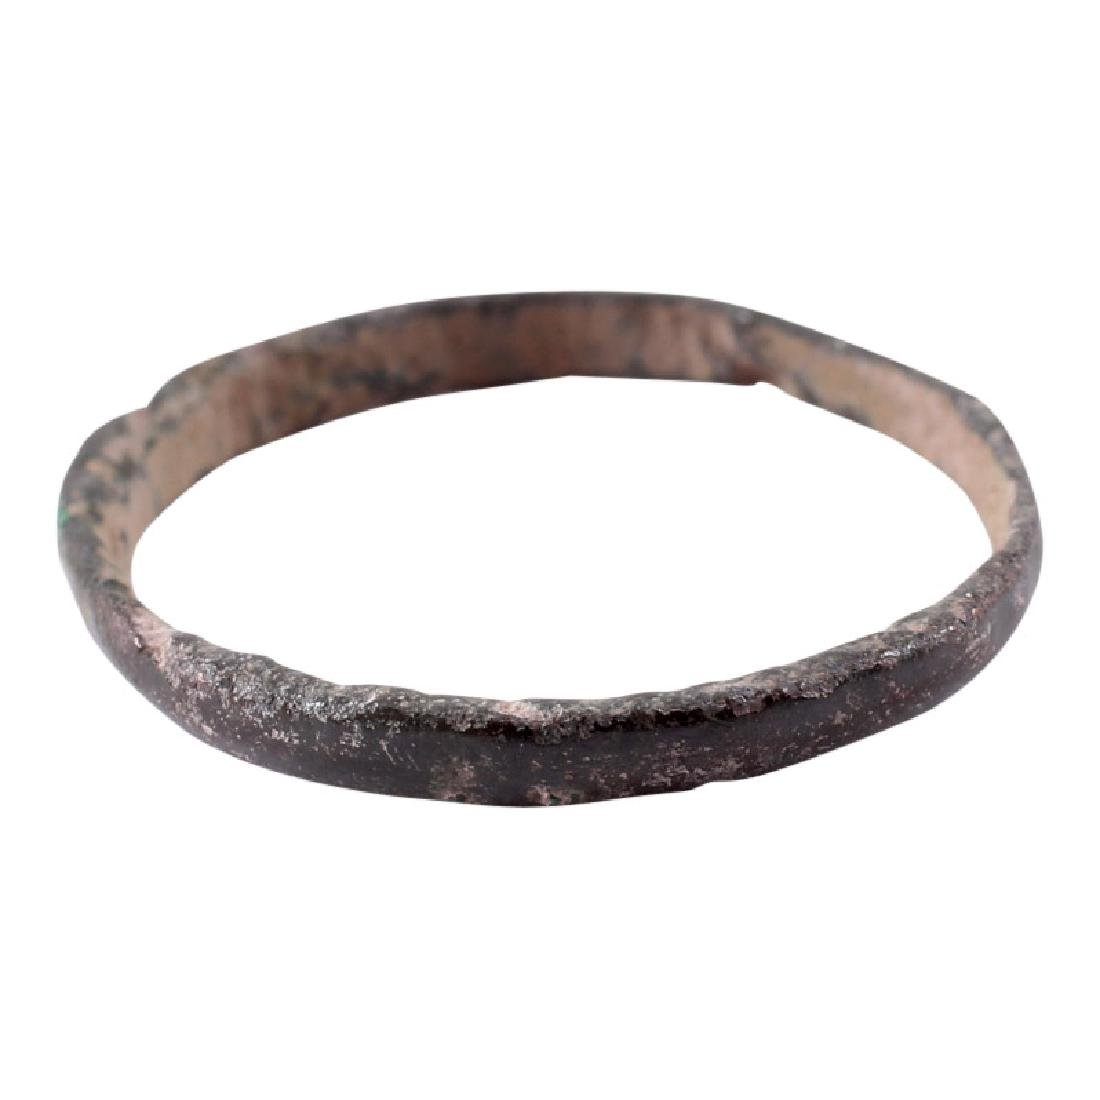 Viking Woman's Wedding Ring, 850-1050